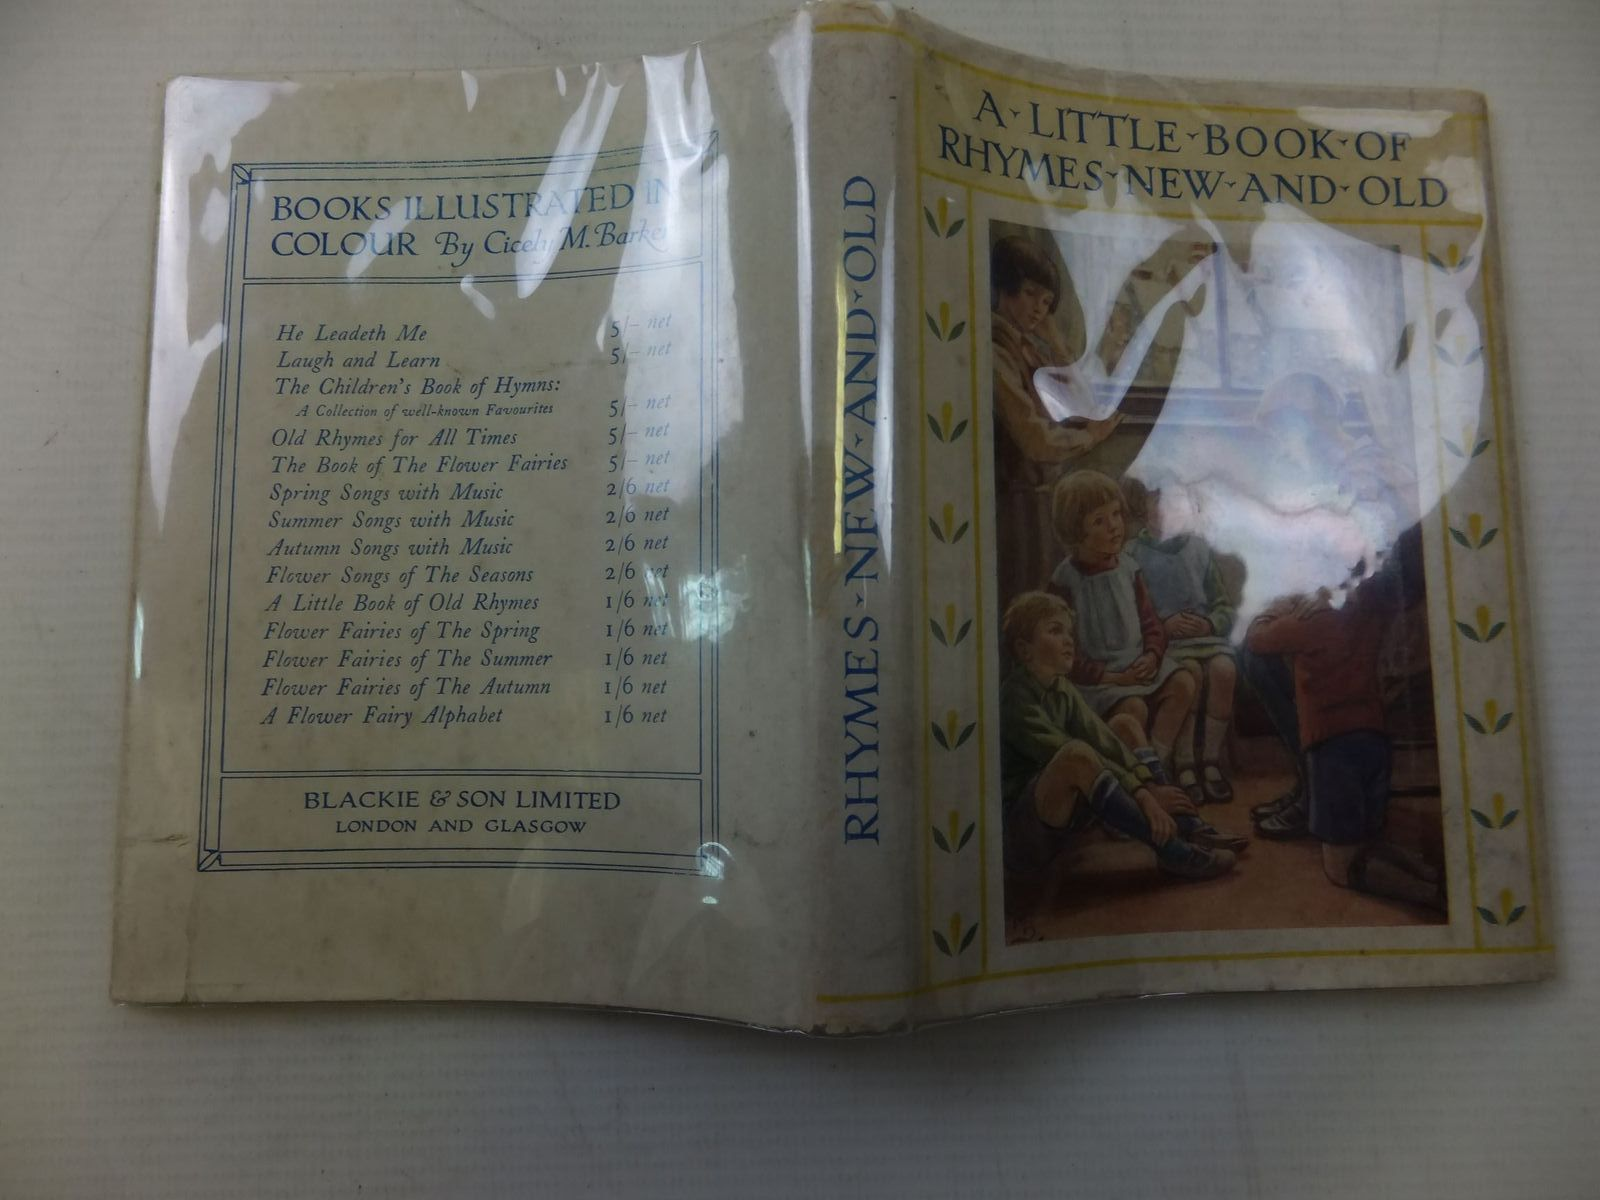 Photo of A LITTLE BOOK OF RHYMES NEW AND OLD written by Barker, Cicely Mary illustrated by Barker, Cicely Mary published by Blackie & Son Ltd. (STOCK CODE: 2113902)  for sale by Stella & Rose's Books